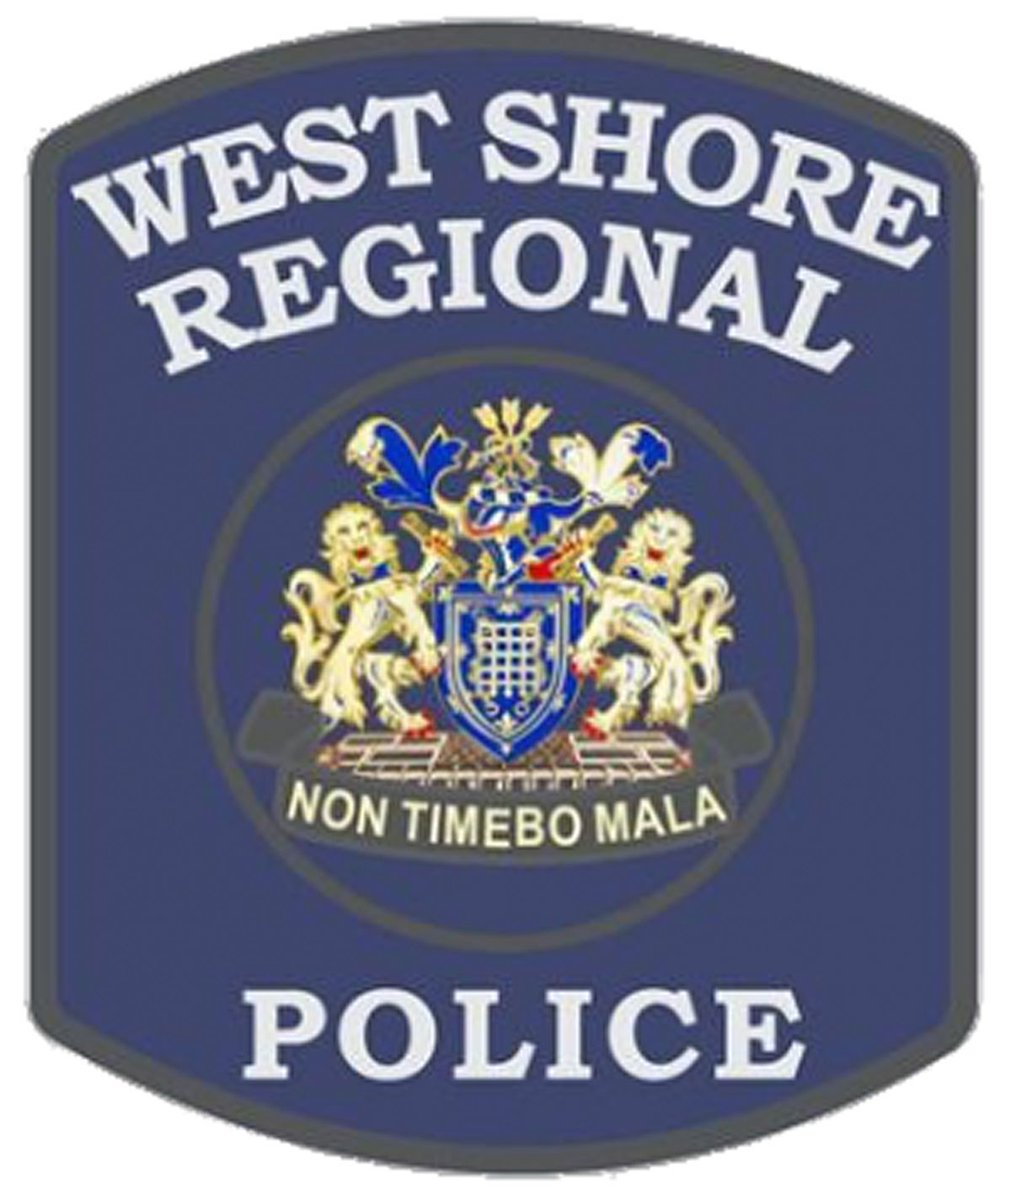 West Shore police warn of false report